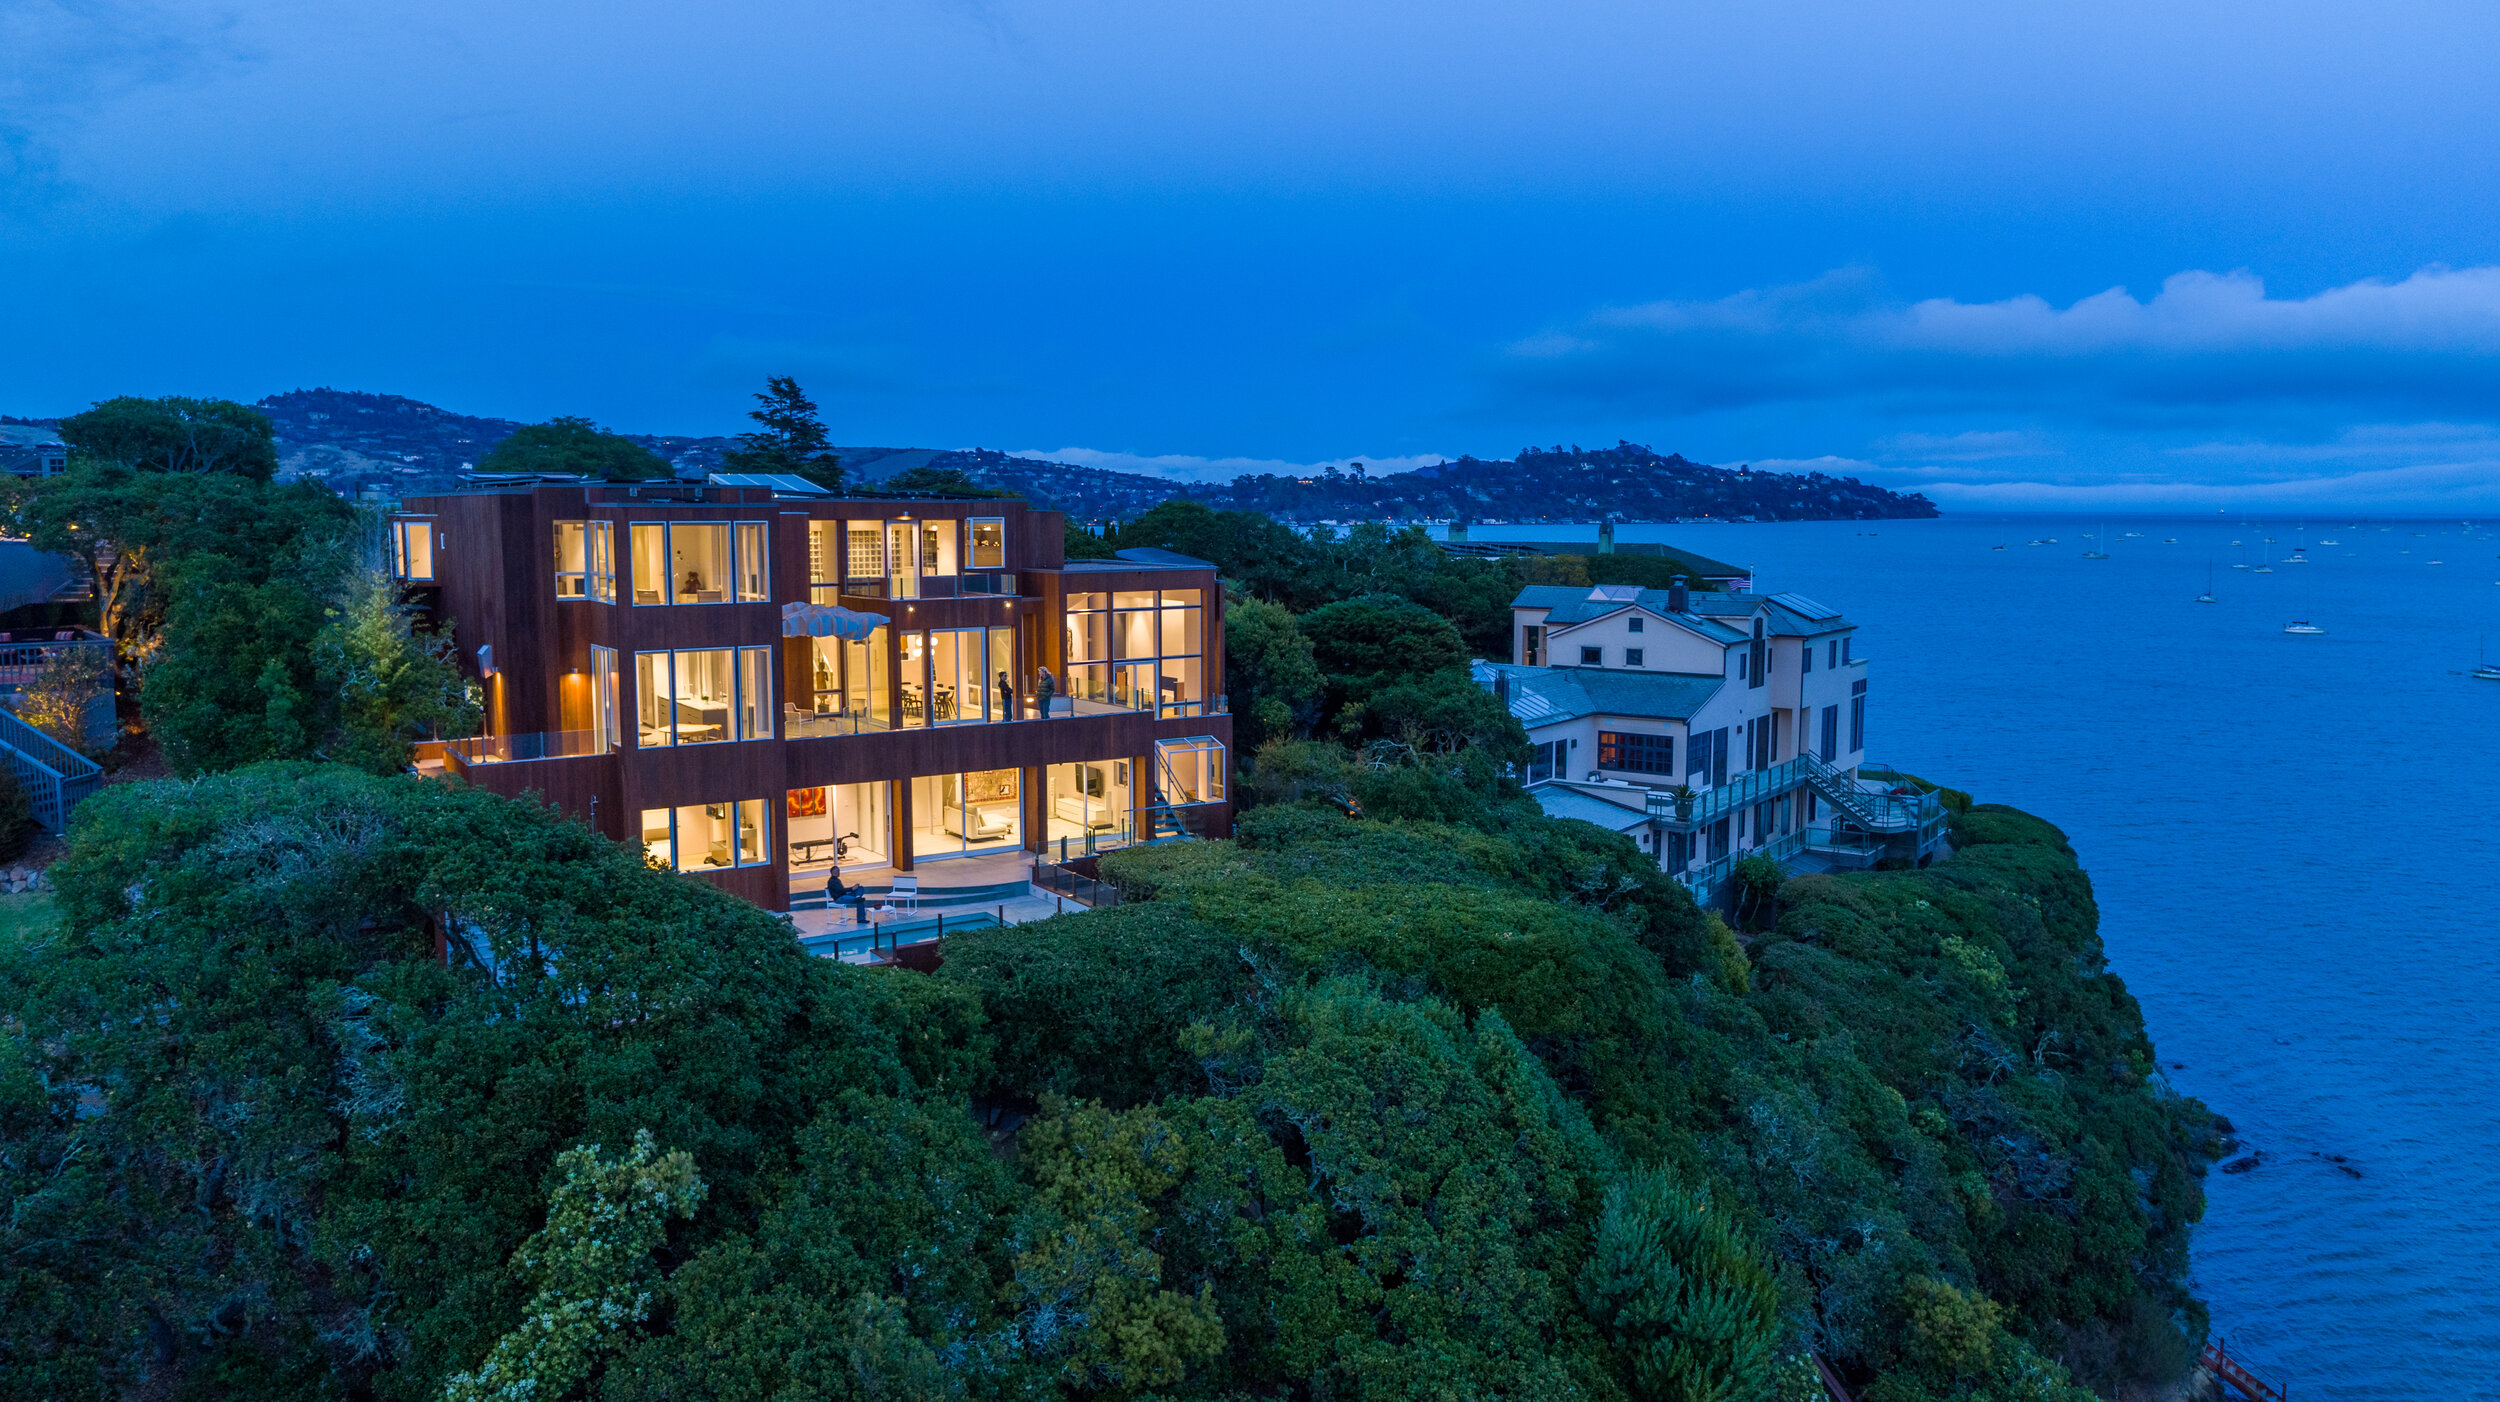 Blue hour photography in Tiburon